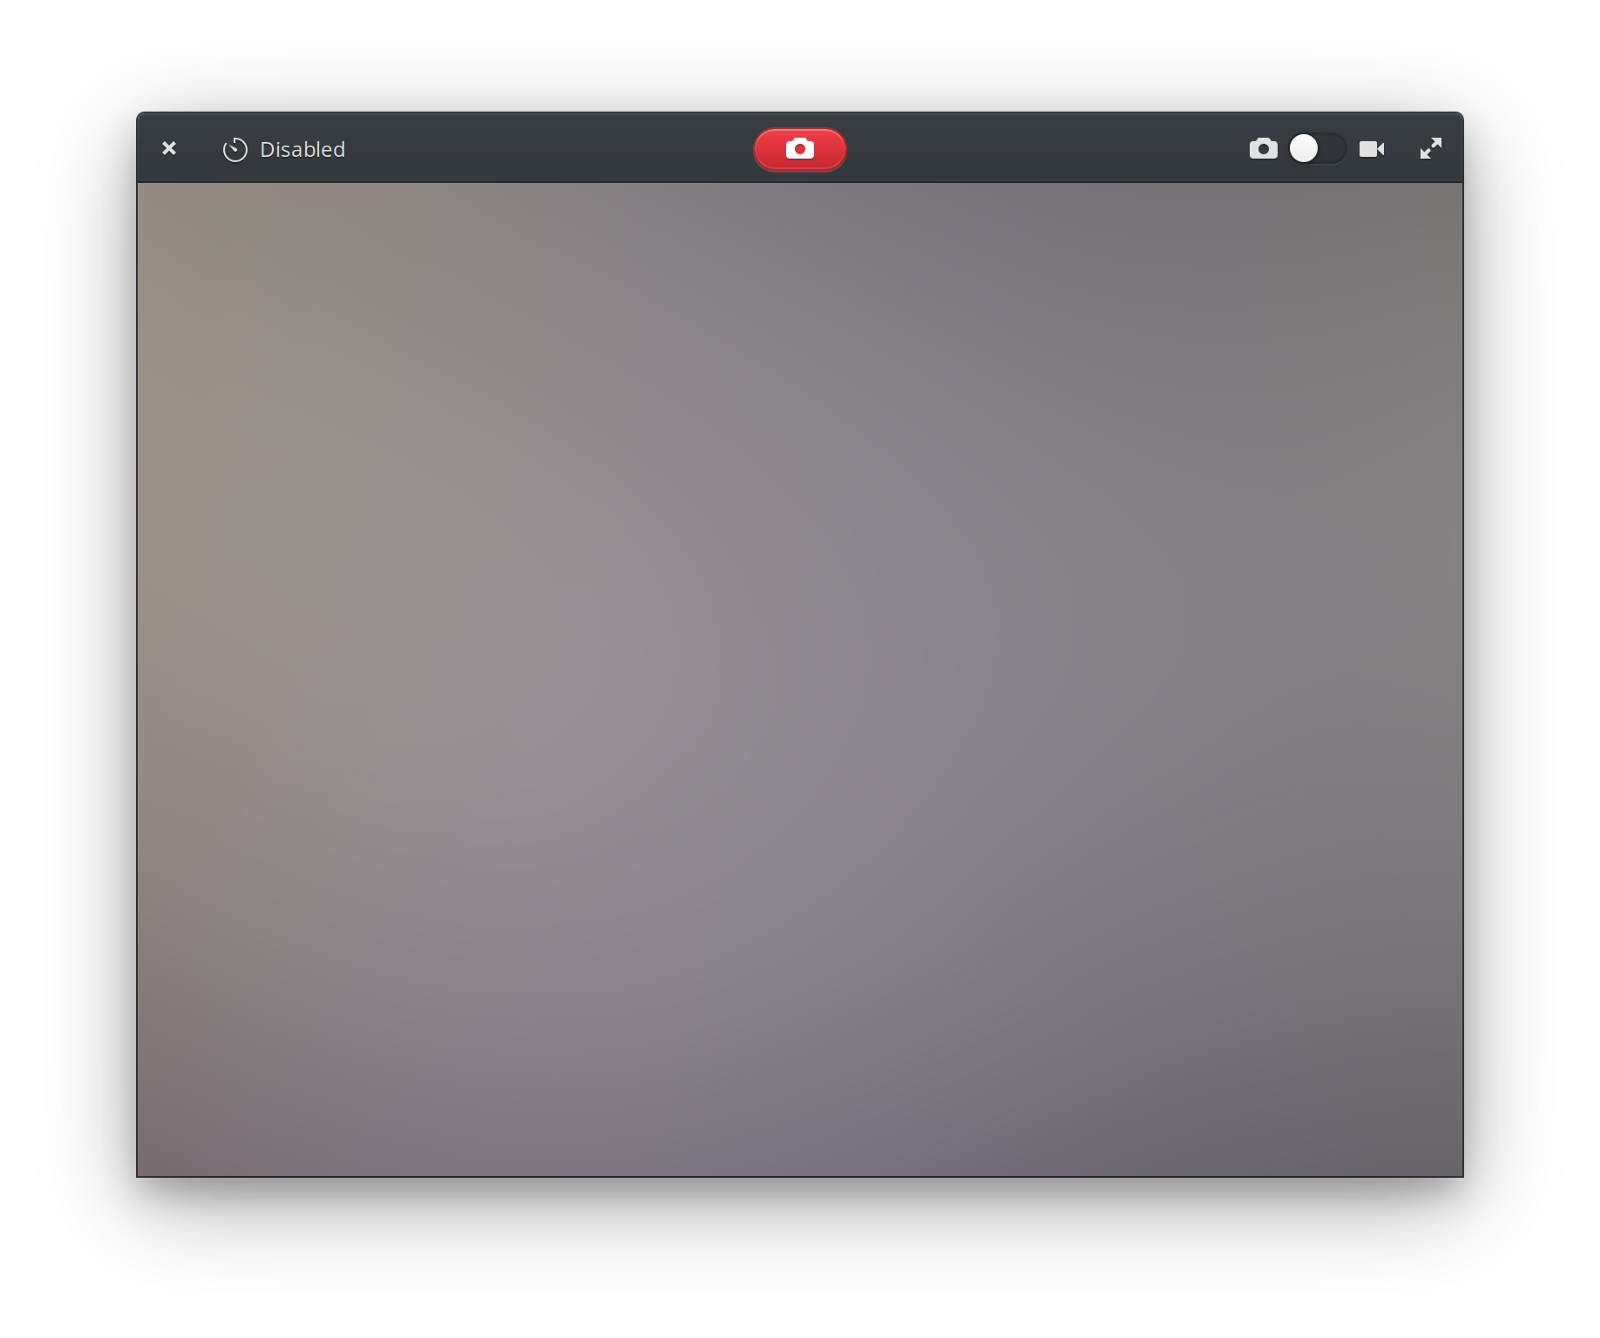 Default apps in their typical light style, plus a prototype darkstyle